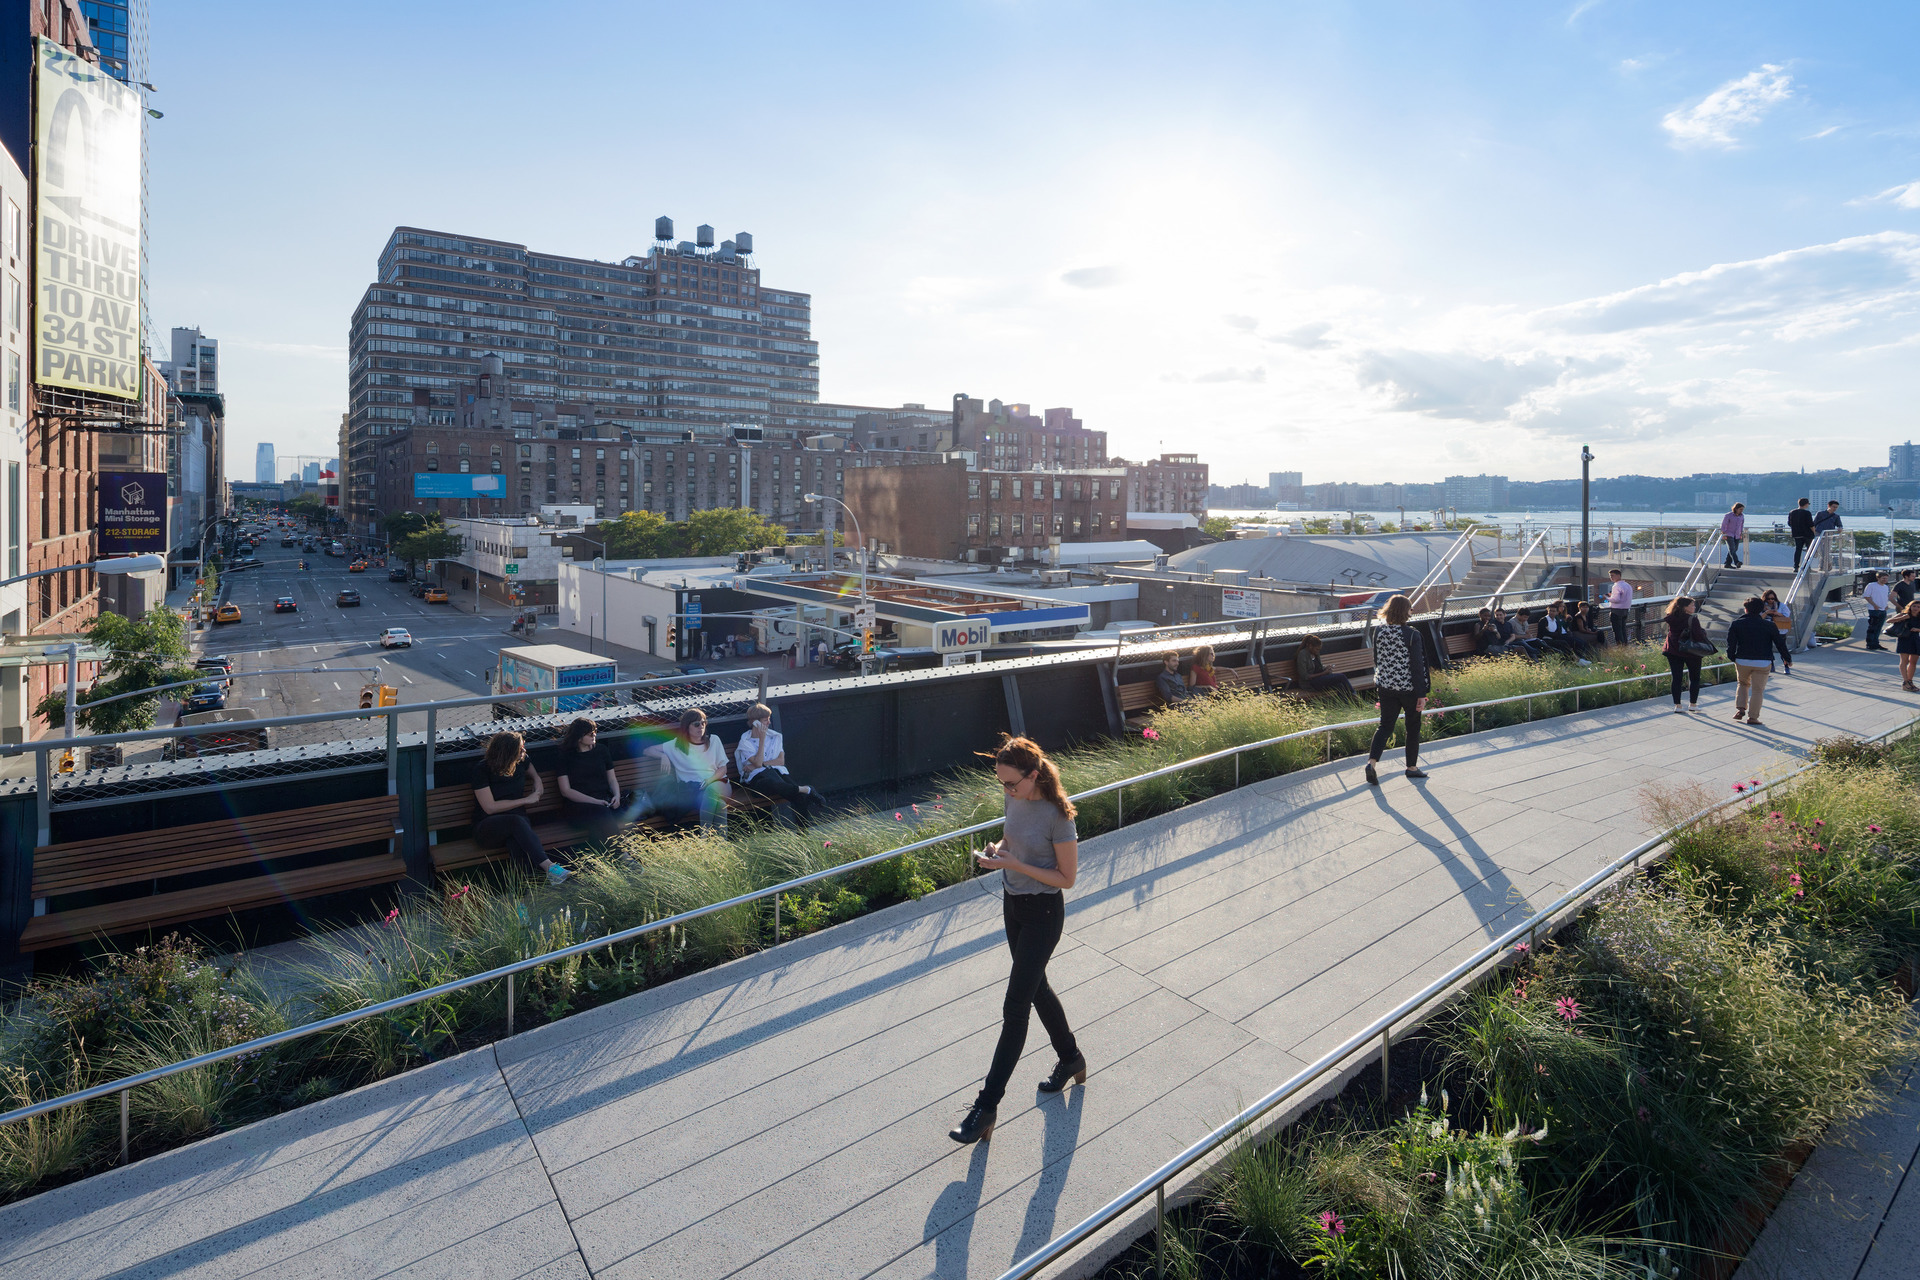 1410-high-line-at-the-rail-yards-photo-by-iwan-baan.jpeg